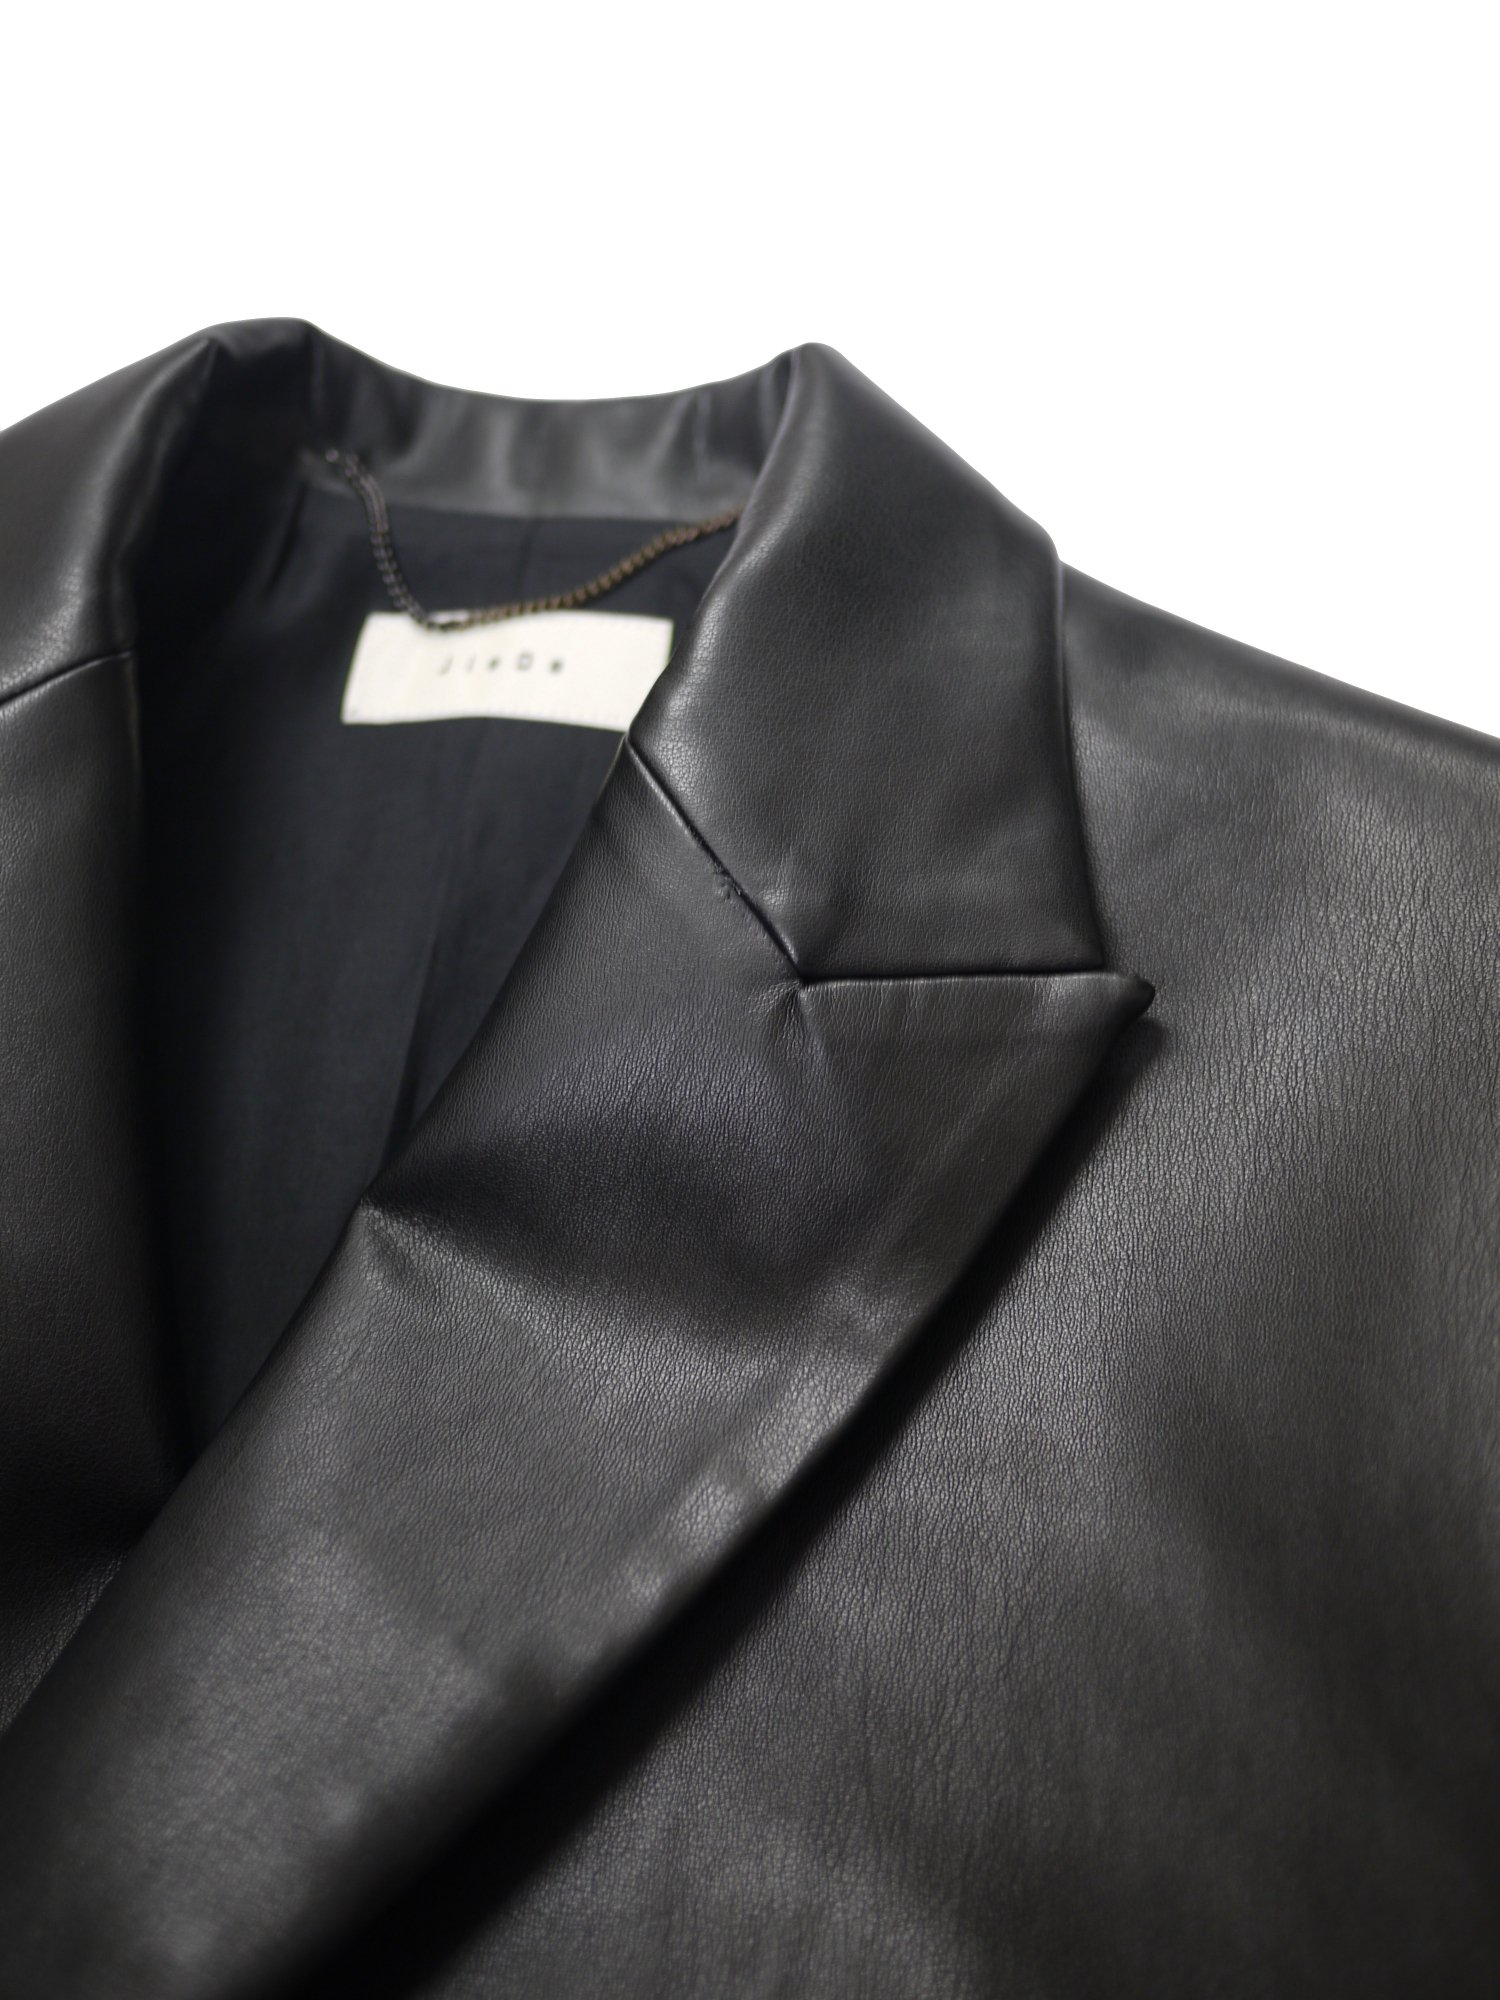 JieDa<br />FAKE LEATHER DOUBLE TAILORED JACKET / BLACK<img class='new_mark_img2' src='https://img.shop-pro.jp/img/new/icons14.gif' style='border:none;display:inline;margin:0px;padding:0px;width:auto;' />